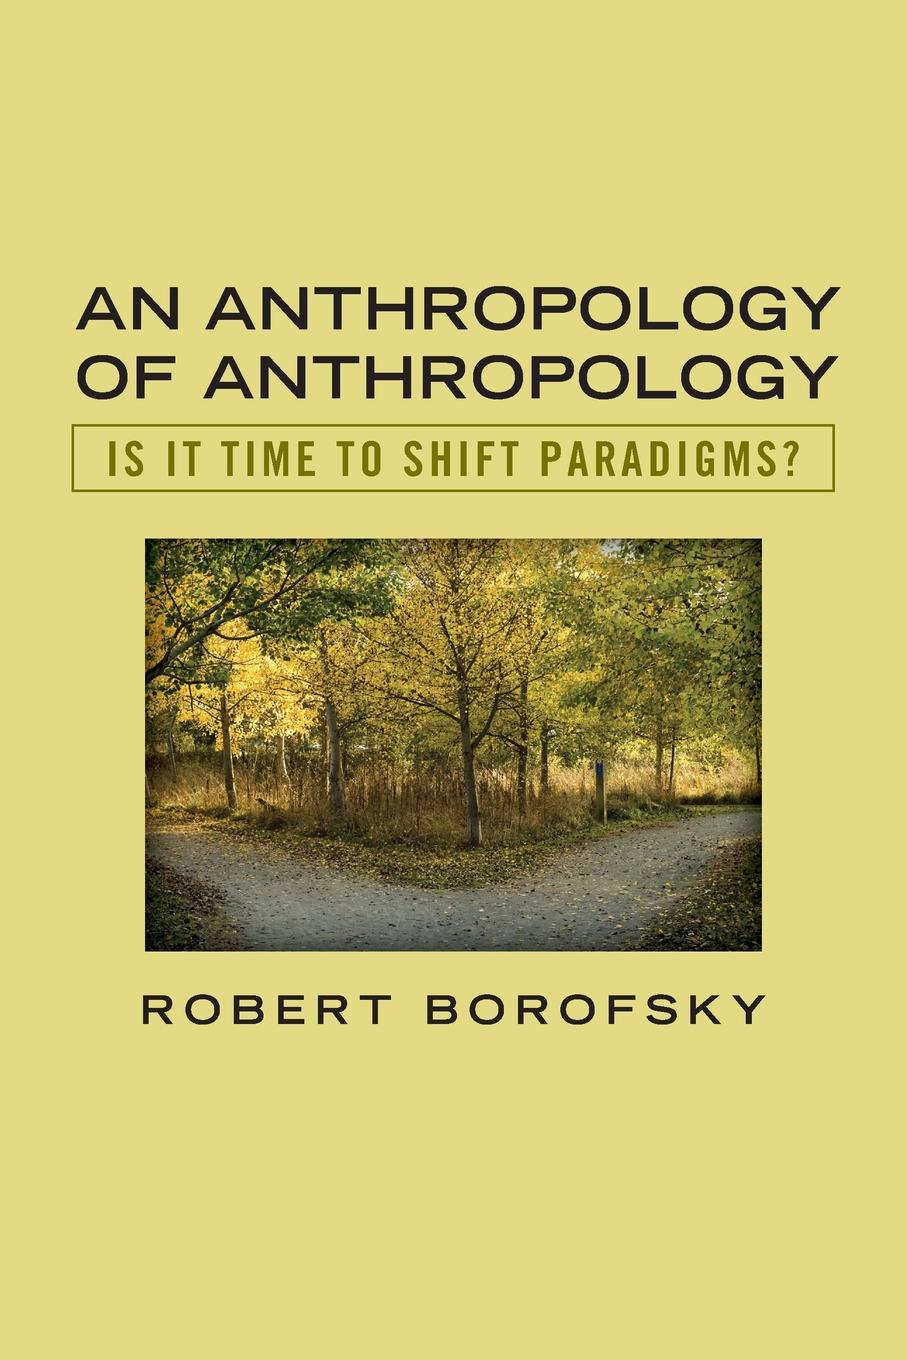 Robert Borofsky An Anthropology of Anthropology. Is It Time to Shift Paradigms jeremy macclancy anthropology in the public arena historical and contemporary contexts